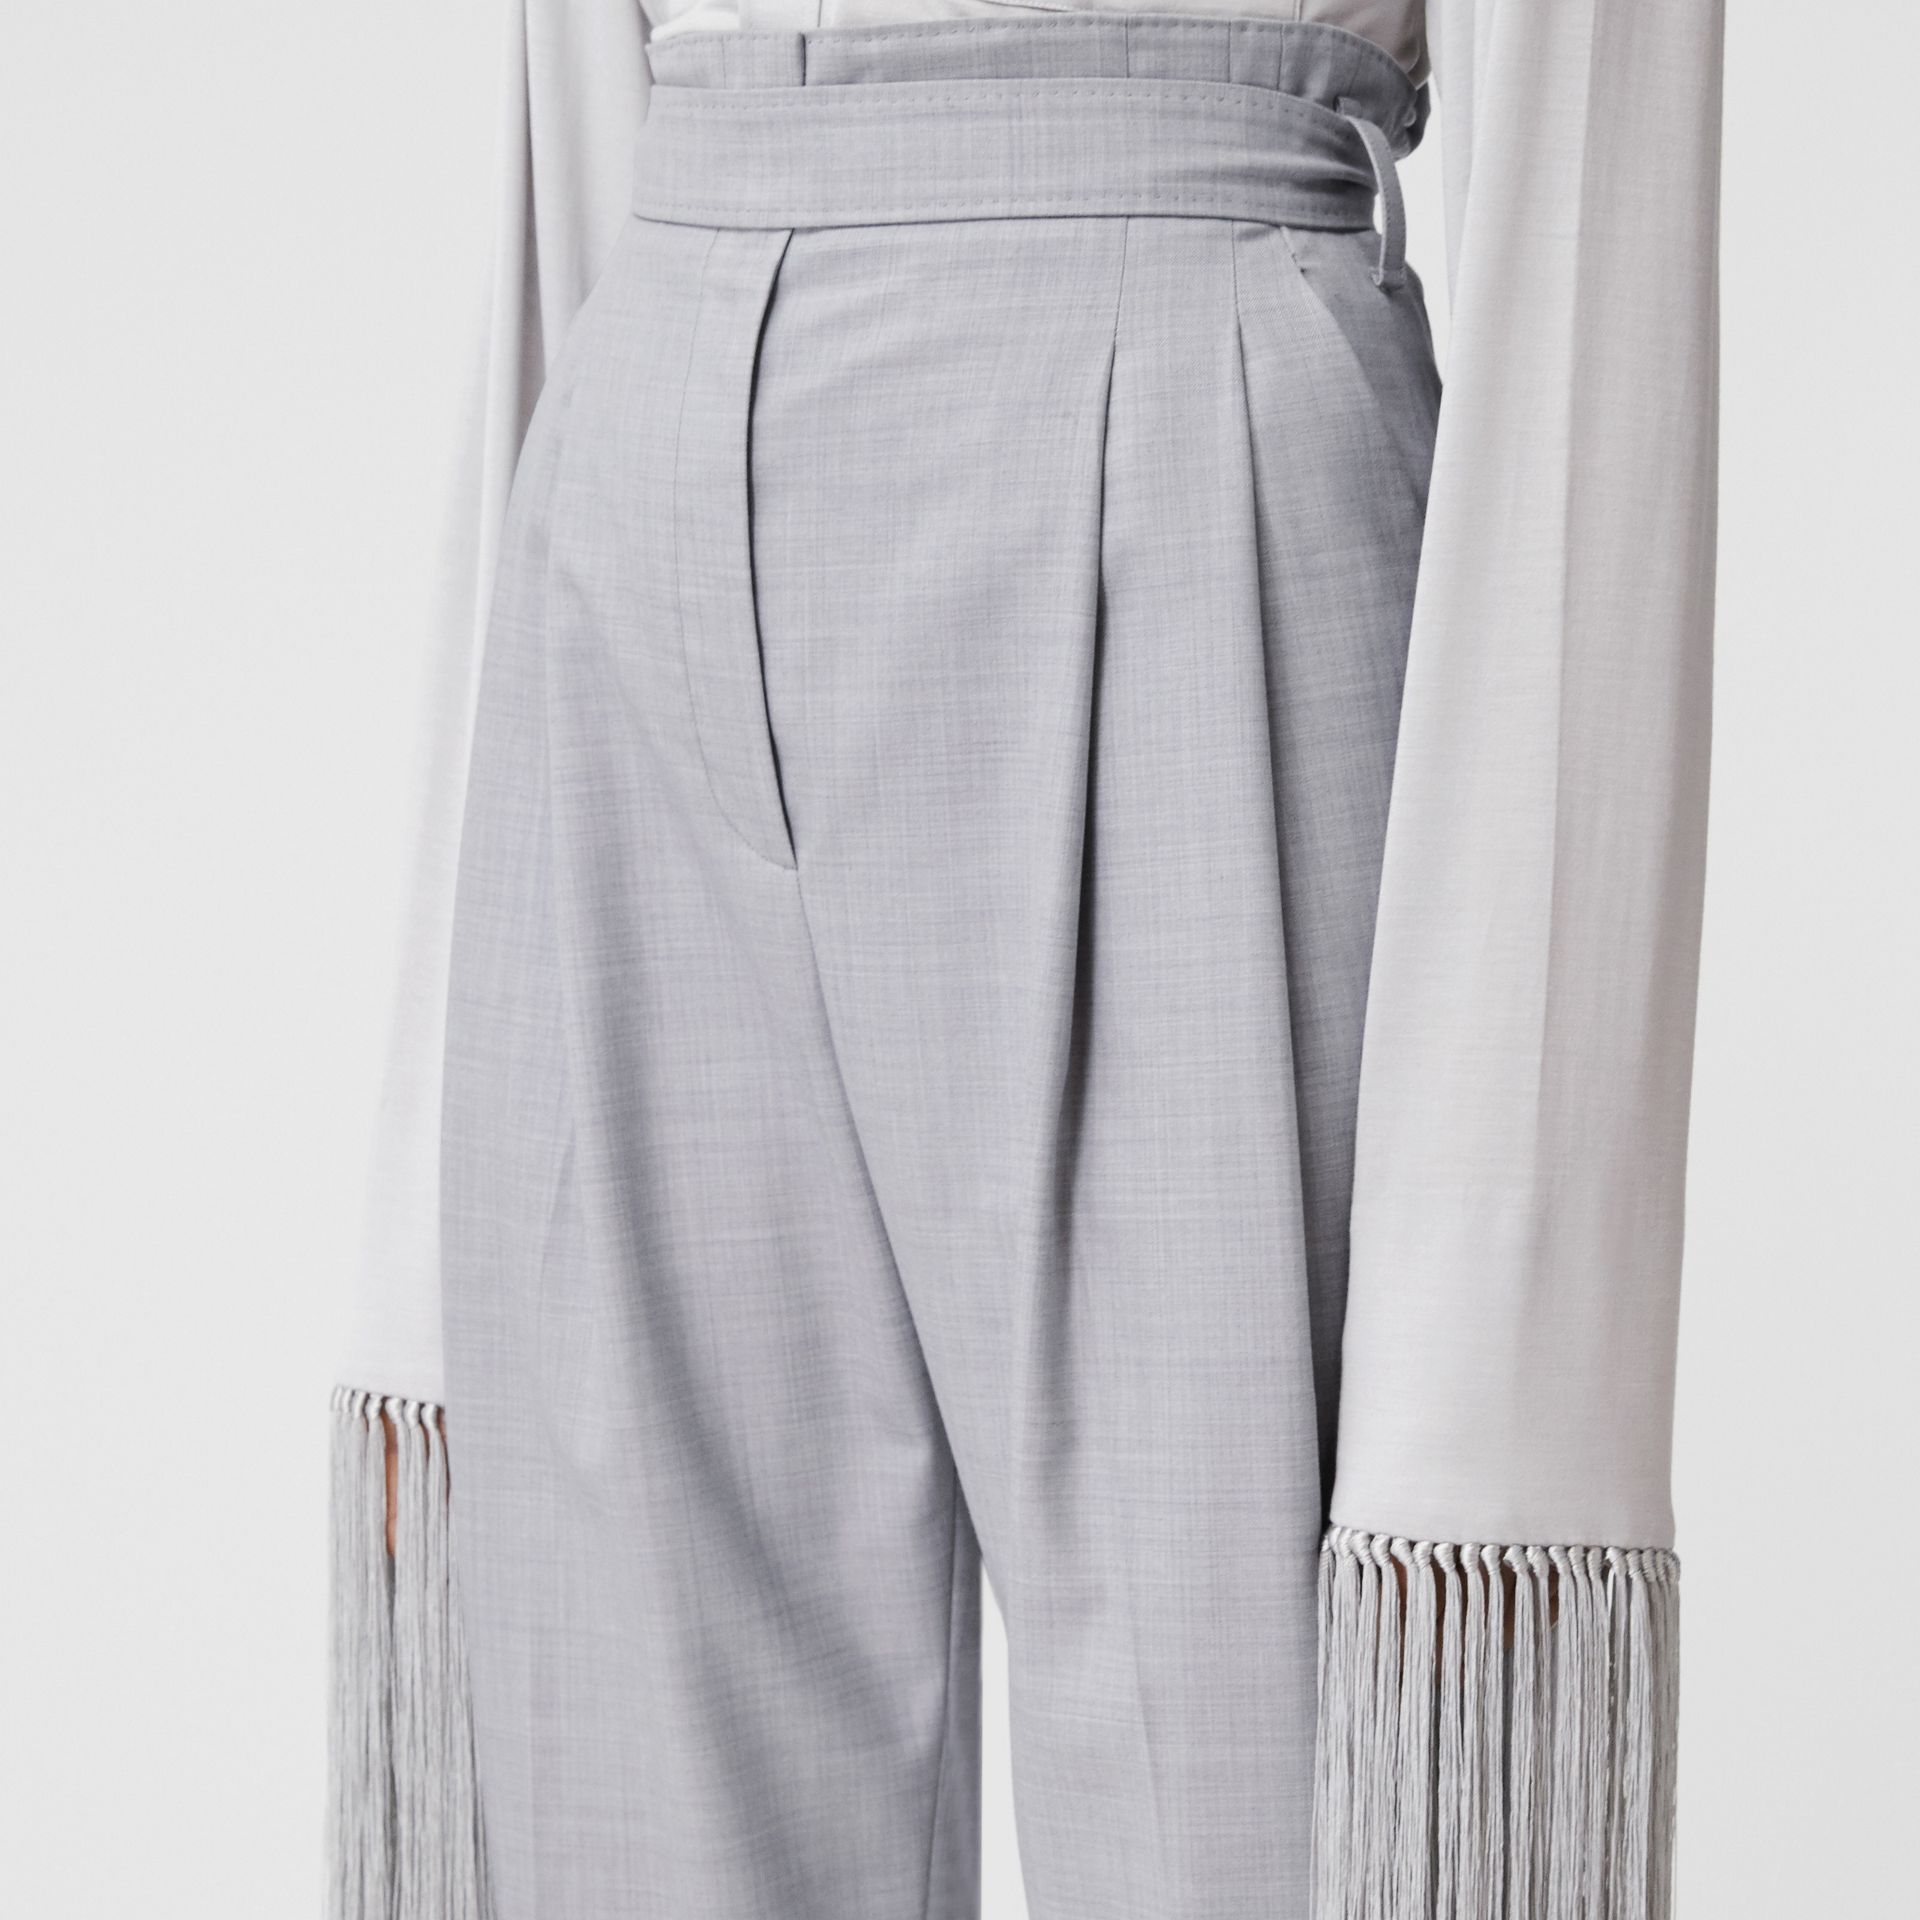 Cut-out Detail Wool Tailored Trousers in Heather Melange - Women | Burberry United States - gallery image 1